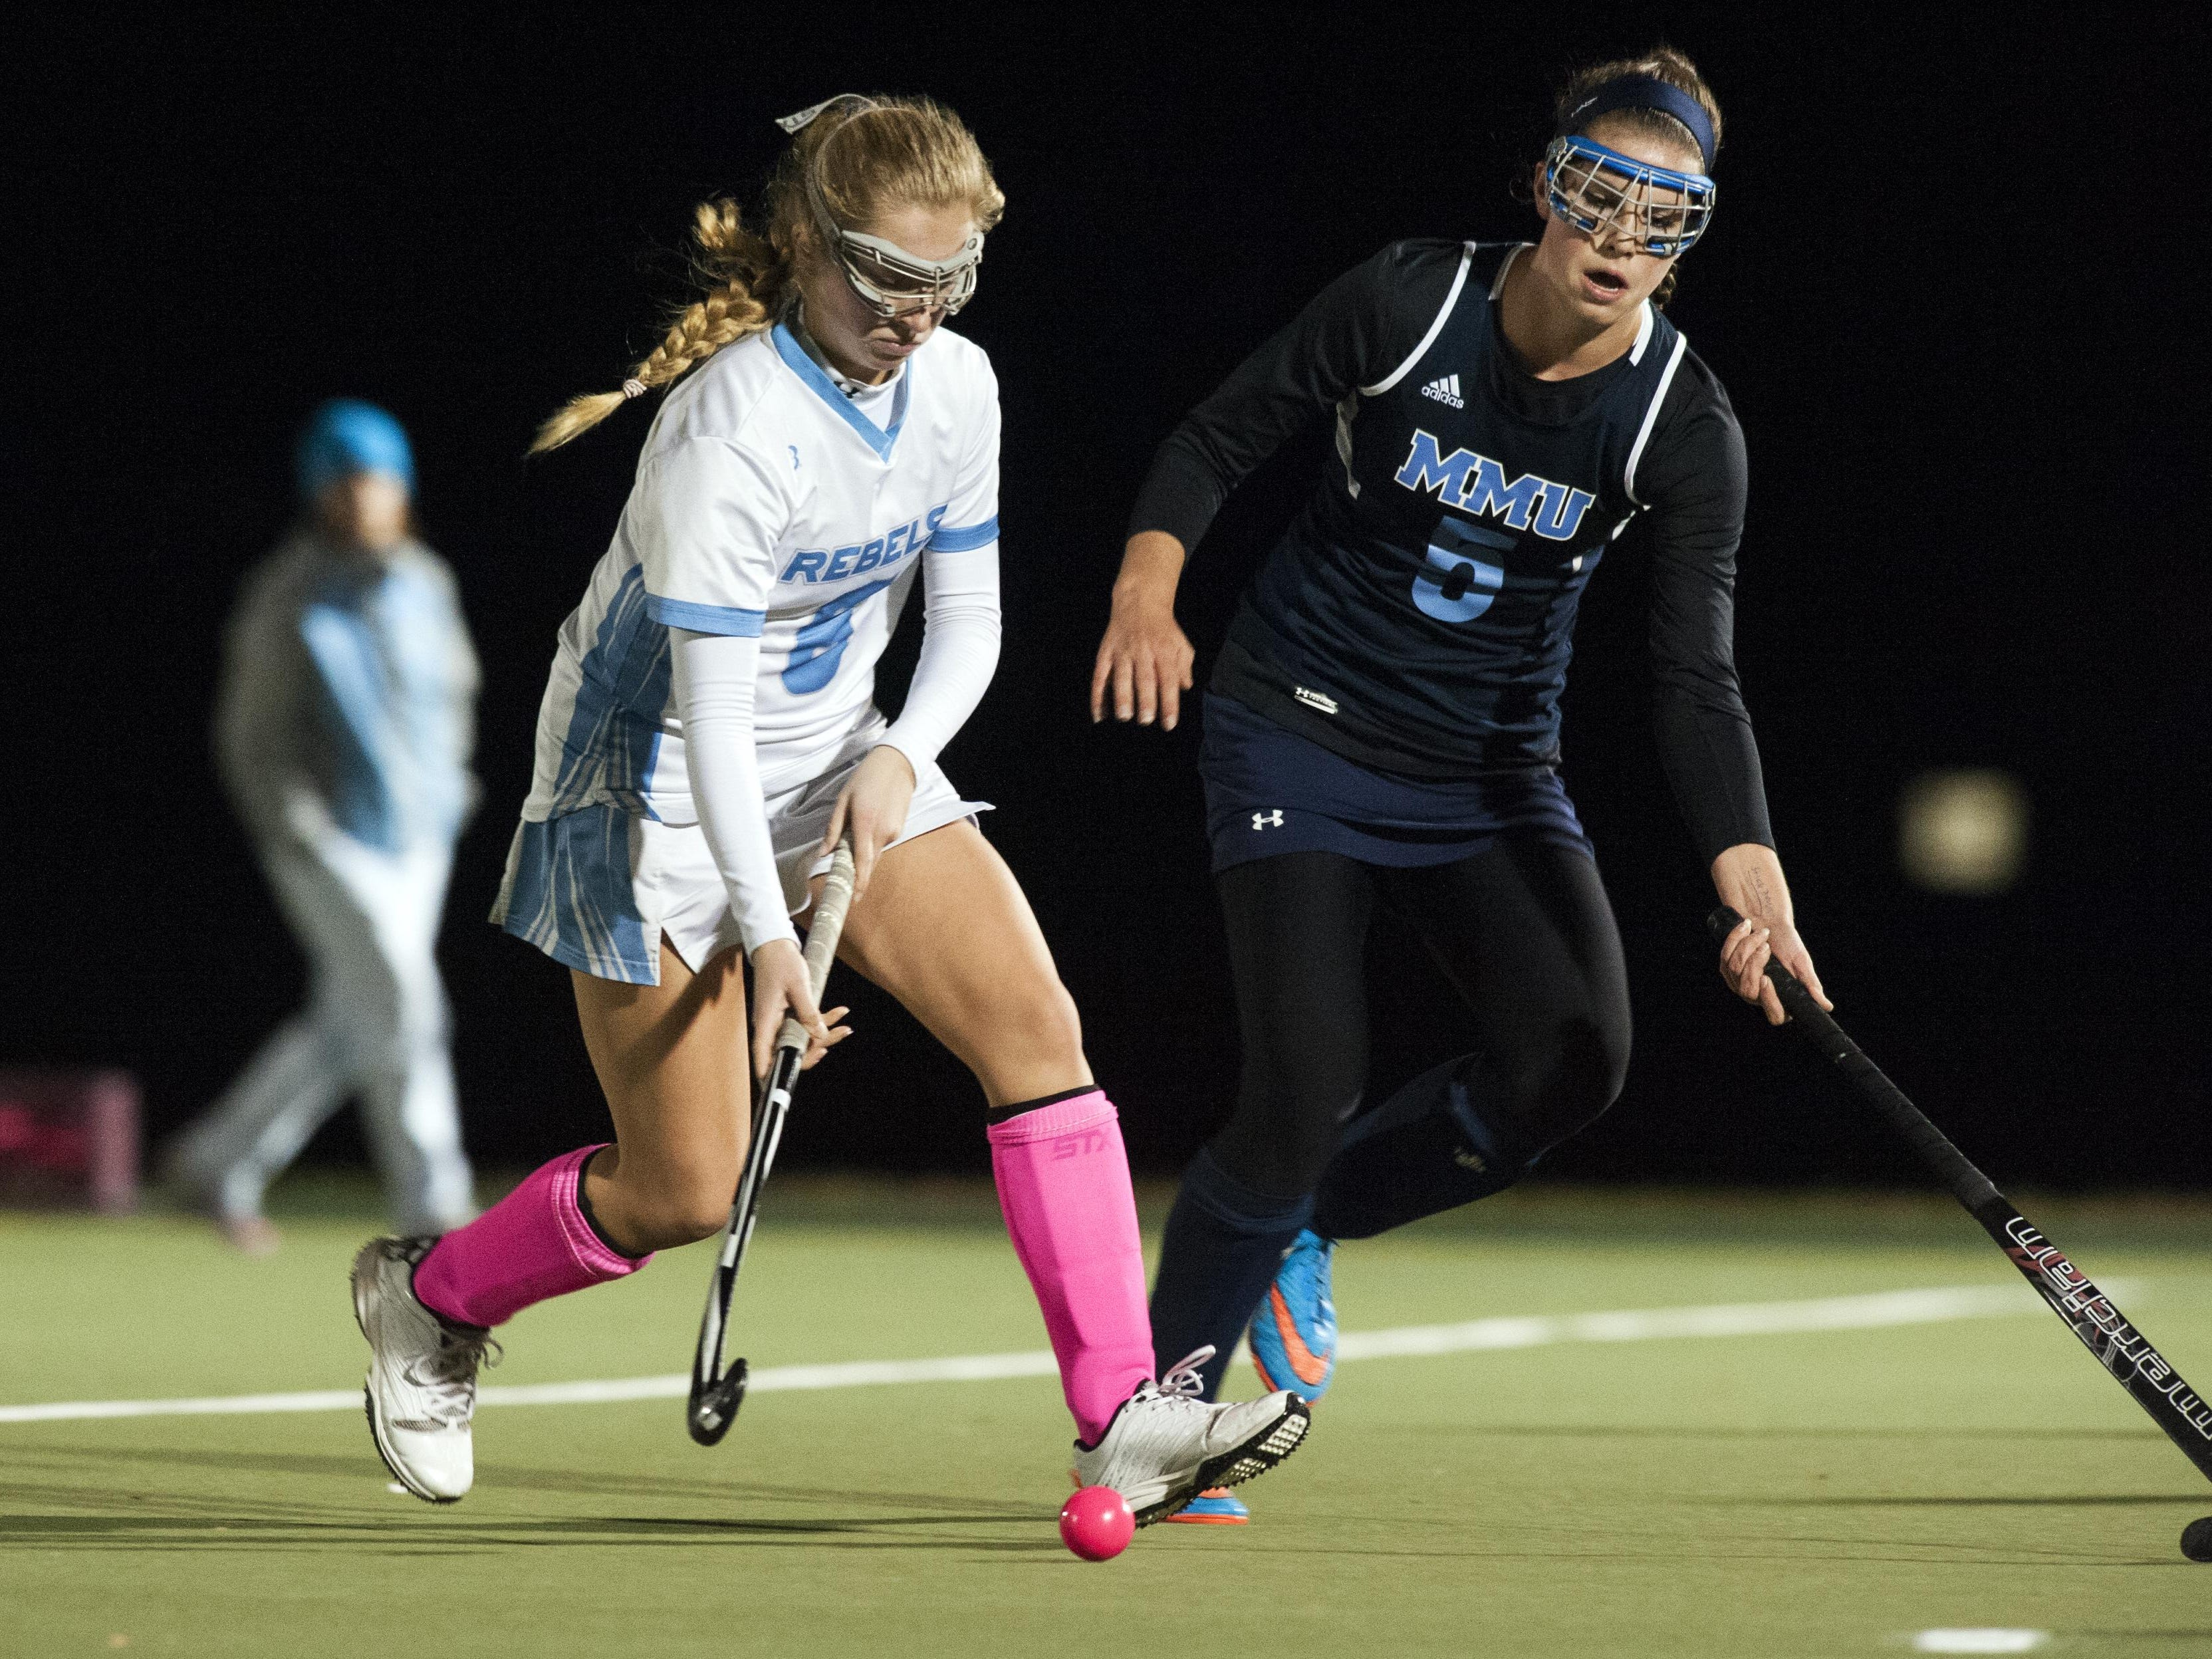 Kimberly Norris, left, and South Burlington will play in today's Division I high school field hockey final against Champlain Valley.